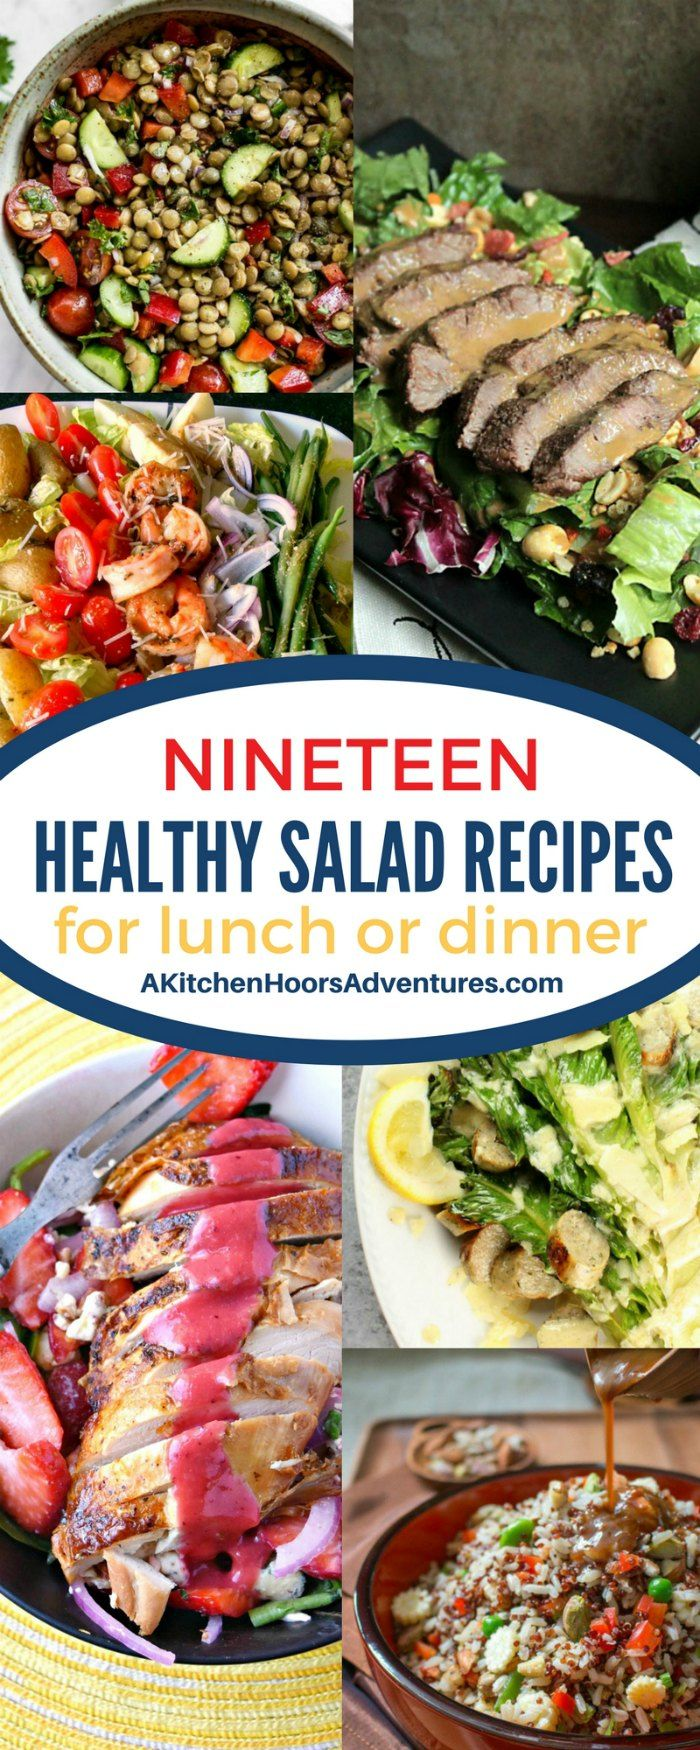 Spring Produce Means Colorful And Delicious Salads For Lunch And